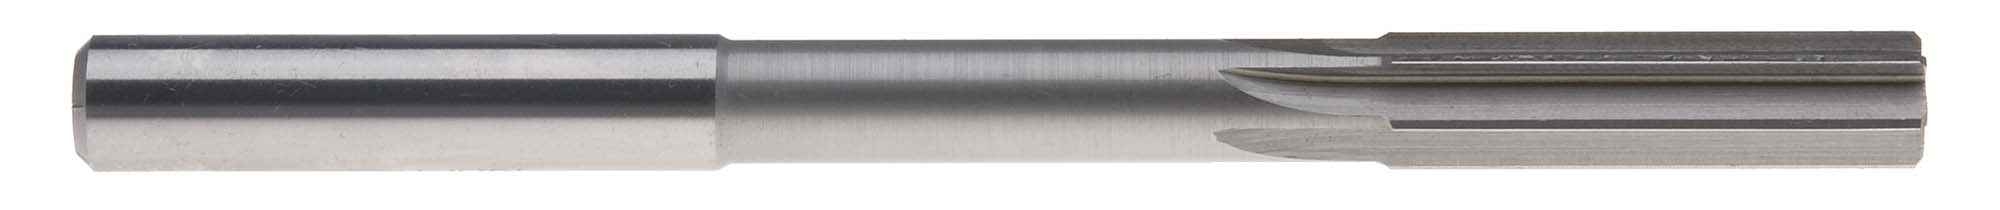 14mm Metric Chucking Reamer, High Speed Steel